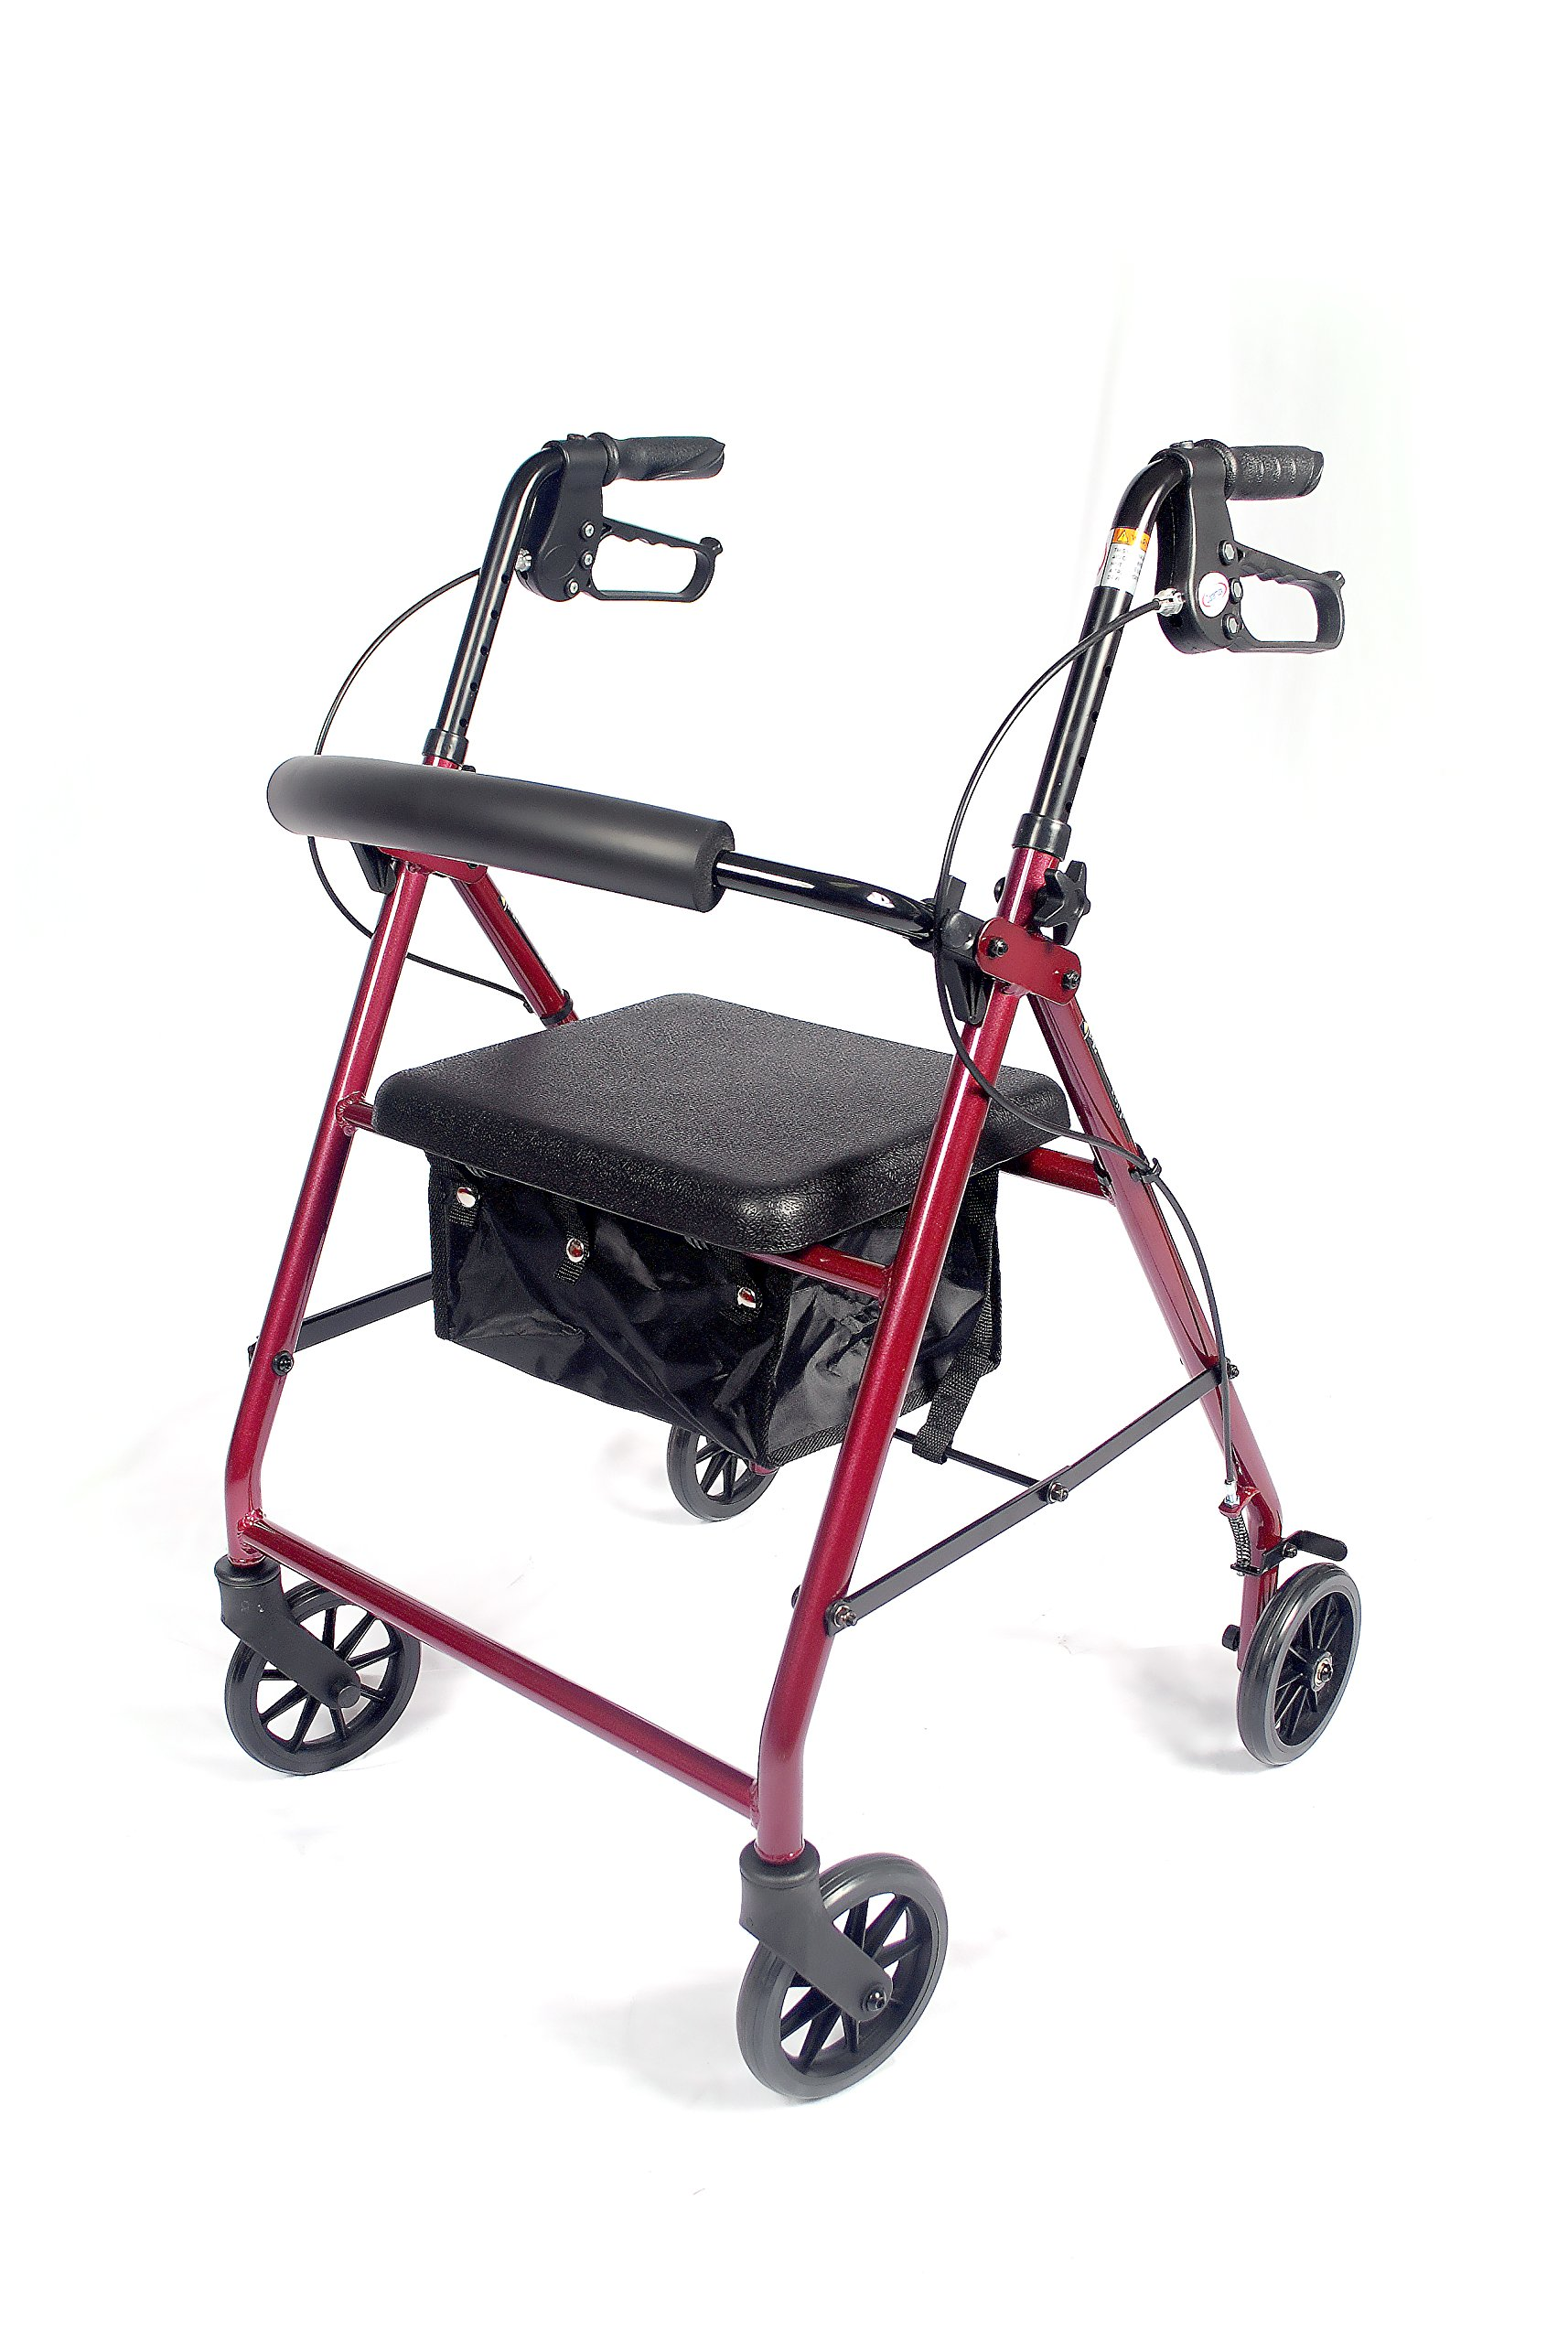 Caremax Lightweight Aluminum Rollator Walker Mobility Aid with 300 lb. Weight Capacity by CareMax